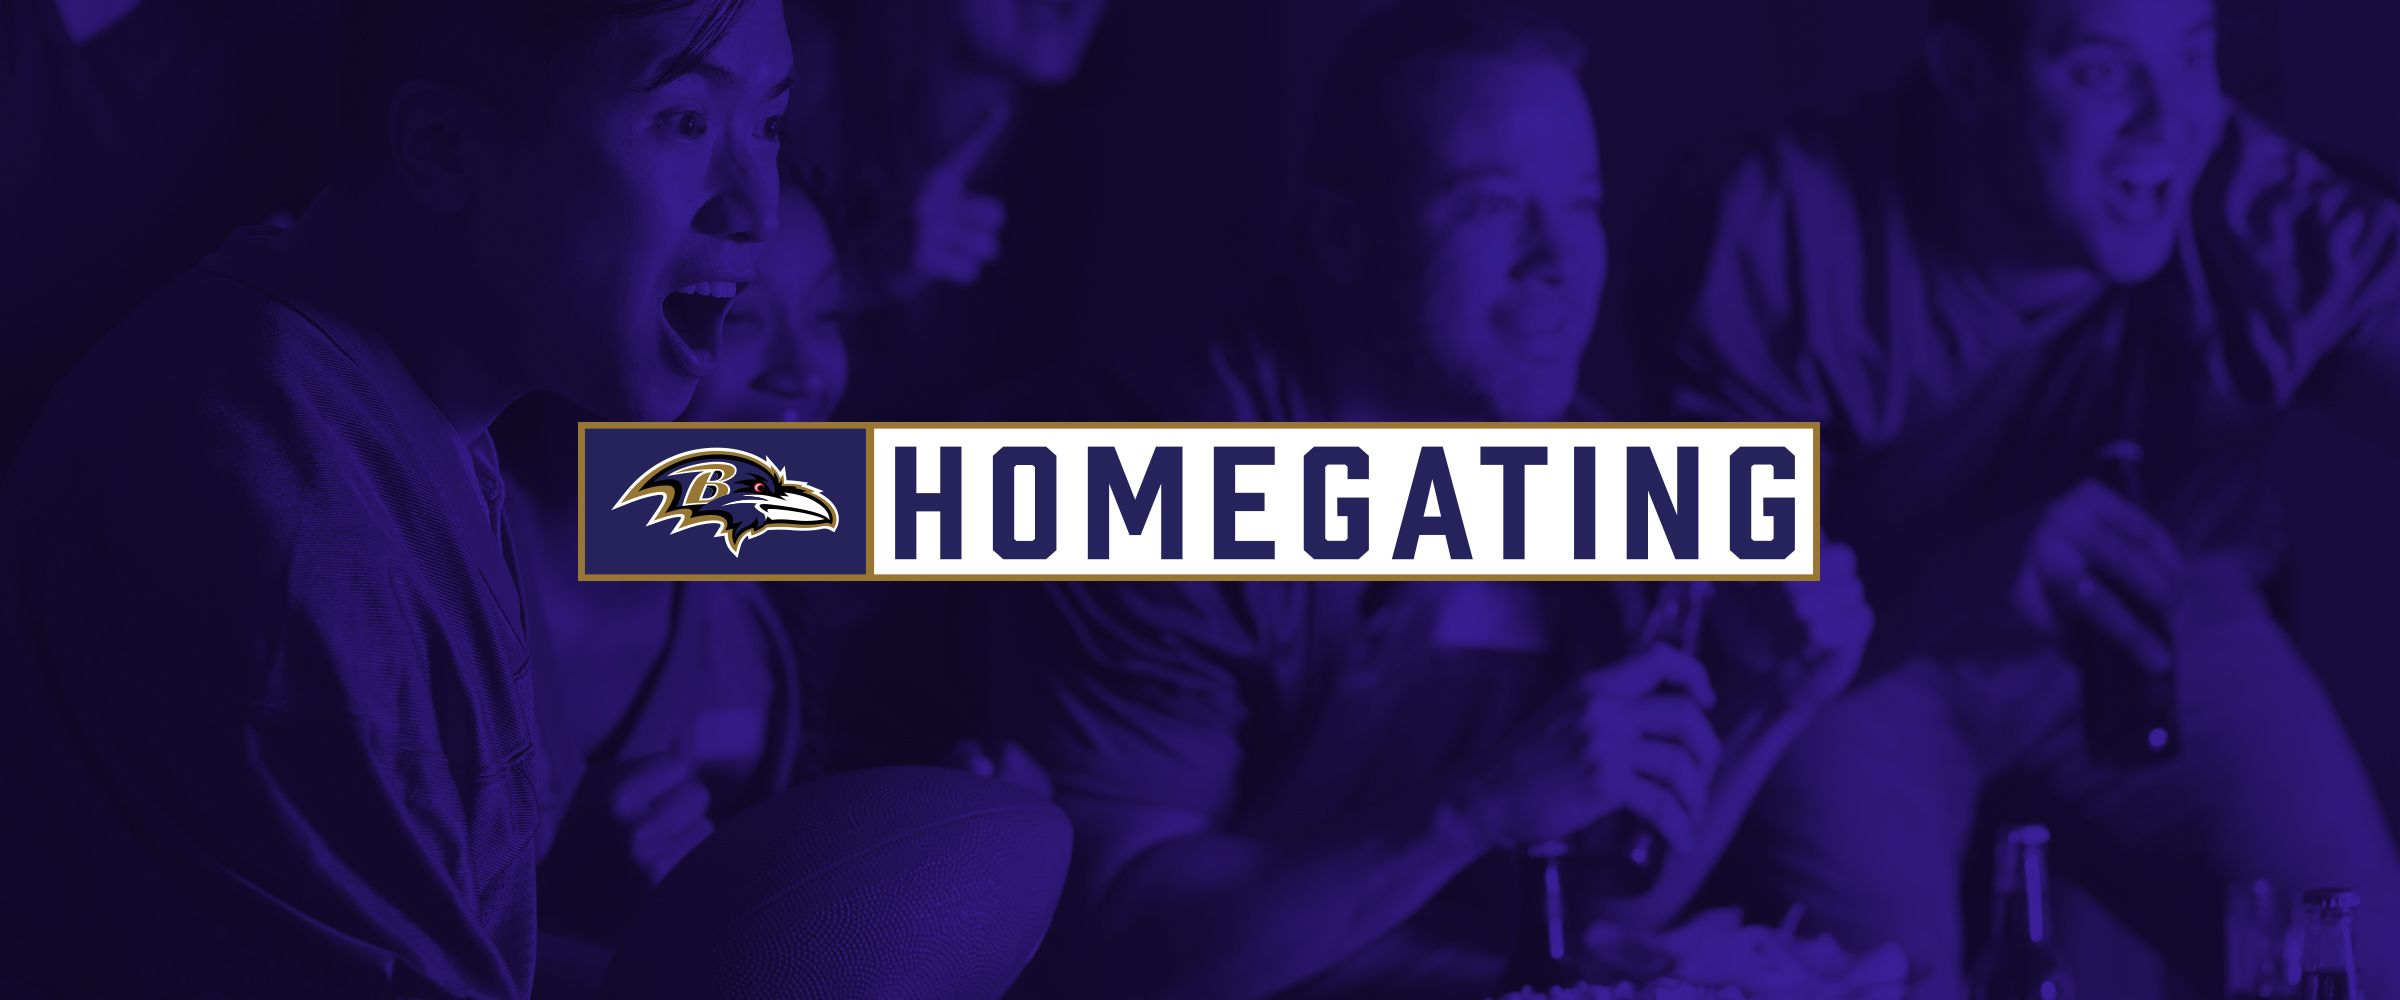 HOMEGATING HEADER 2400x1000 (1)